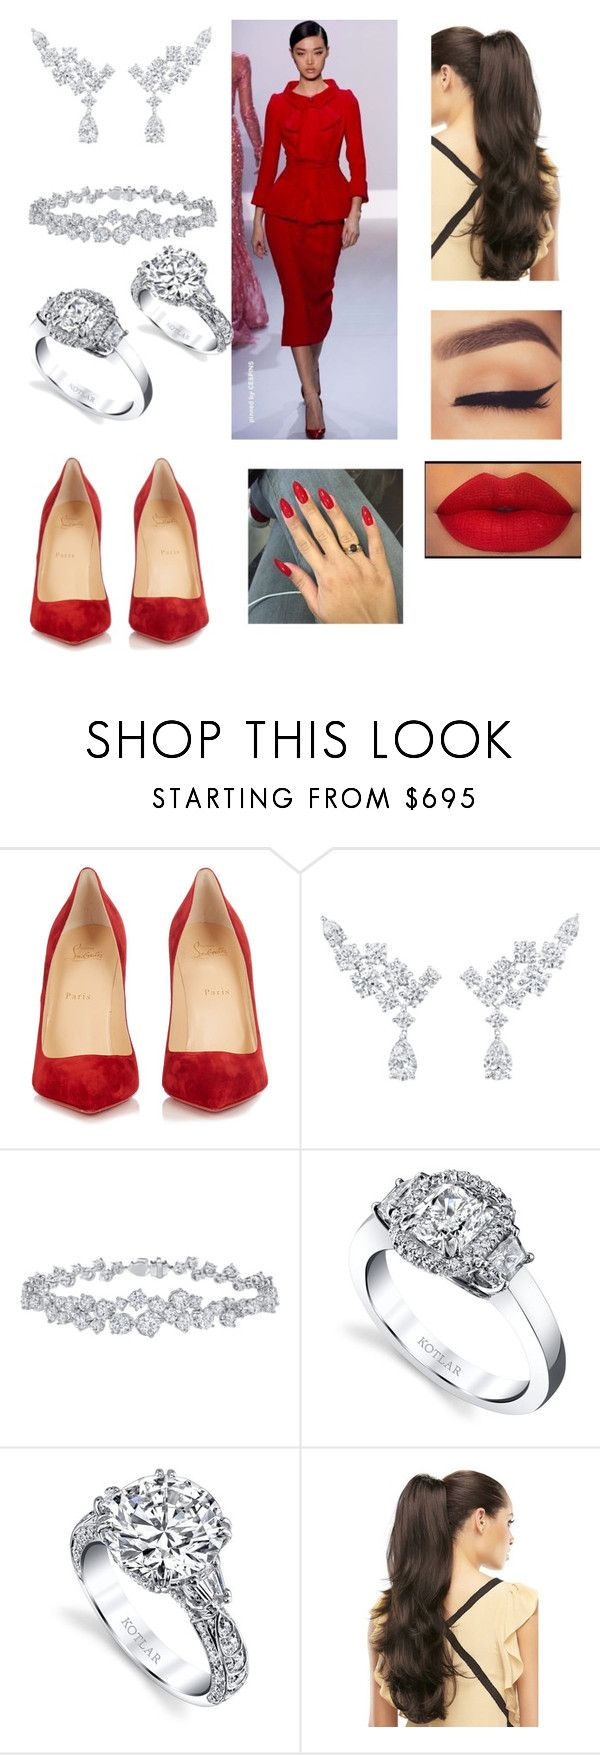 """Untitled #3500"" by vanessa898 ❤ liked on Polyvore featuring RALPH, Christian Louboutin, Harry Winston and Harry Kotlar"